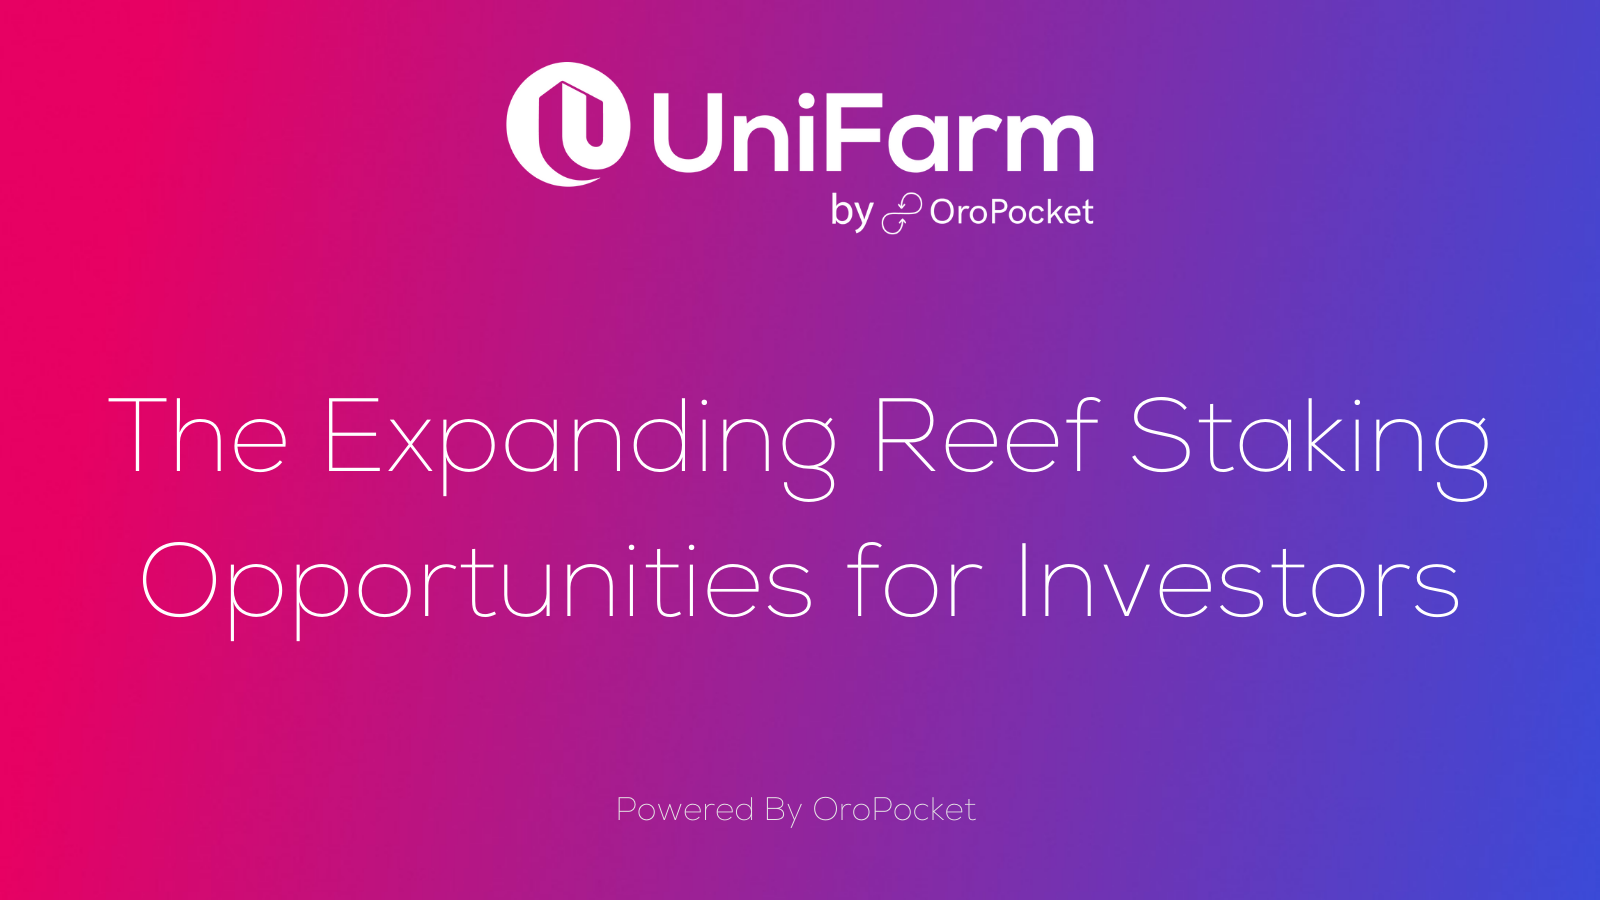 The Expanding Reef Staking Opportunities for Investors